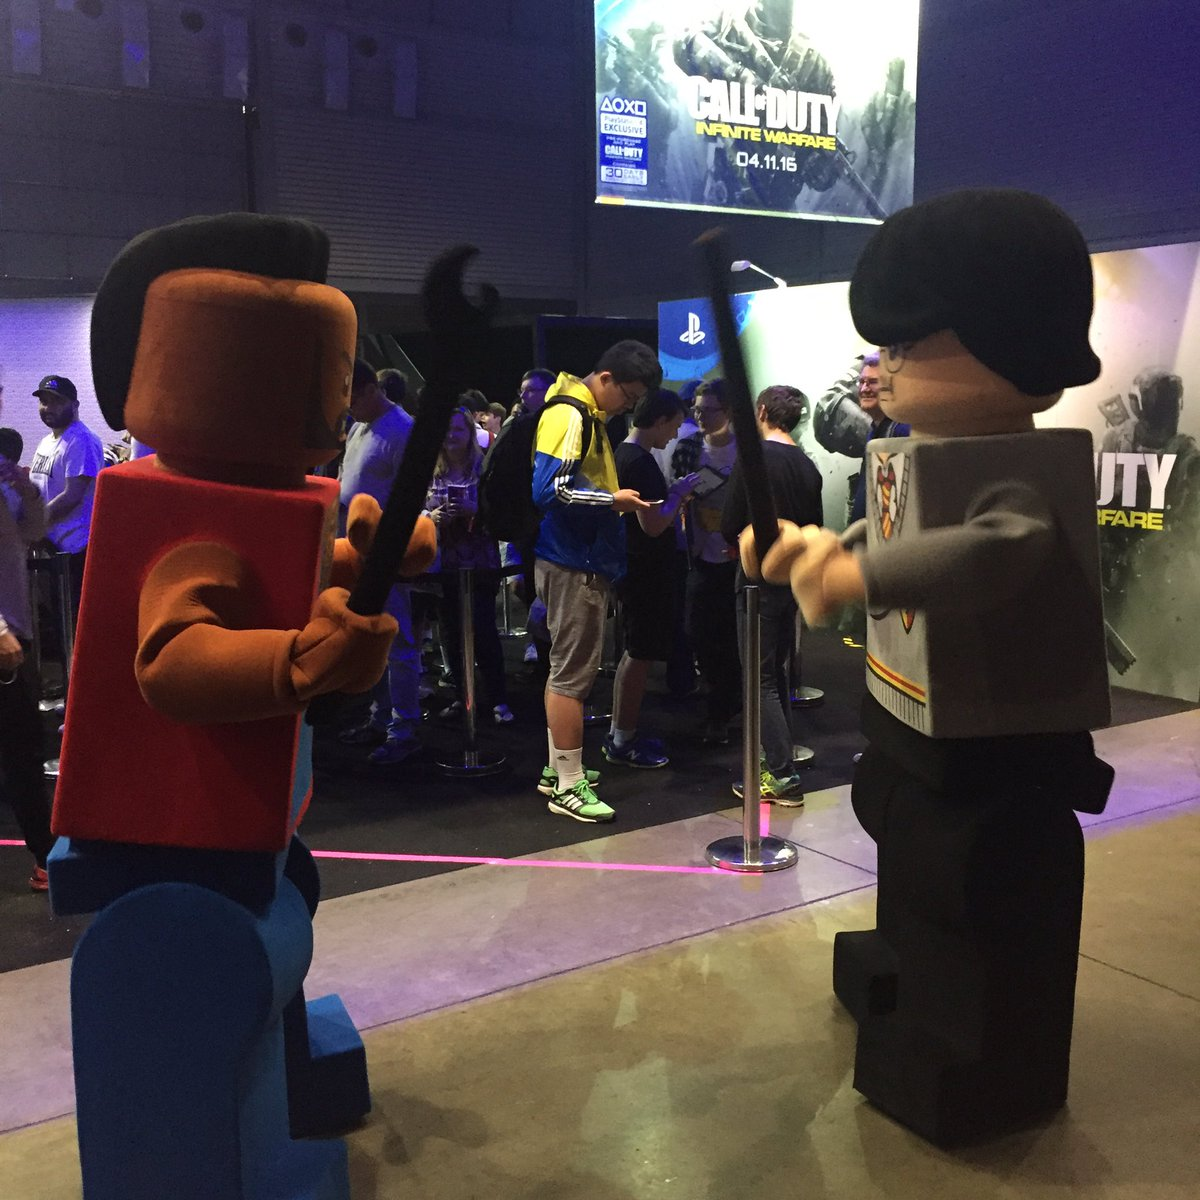 EB Games Australia on Twitter   We ve got ourselves a classic  Lego     EB Games Australia on Twitter   We ve got ourselves a classic  Lego Mr  T  vs Lego Harry Potter situation here at  EBExpo